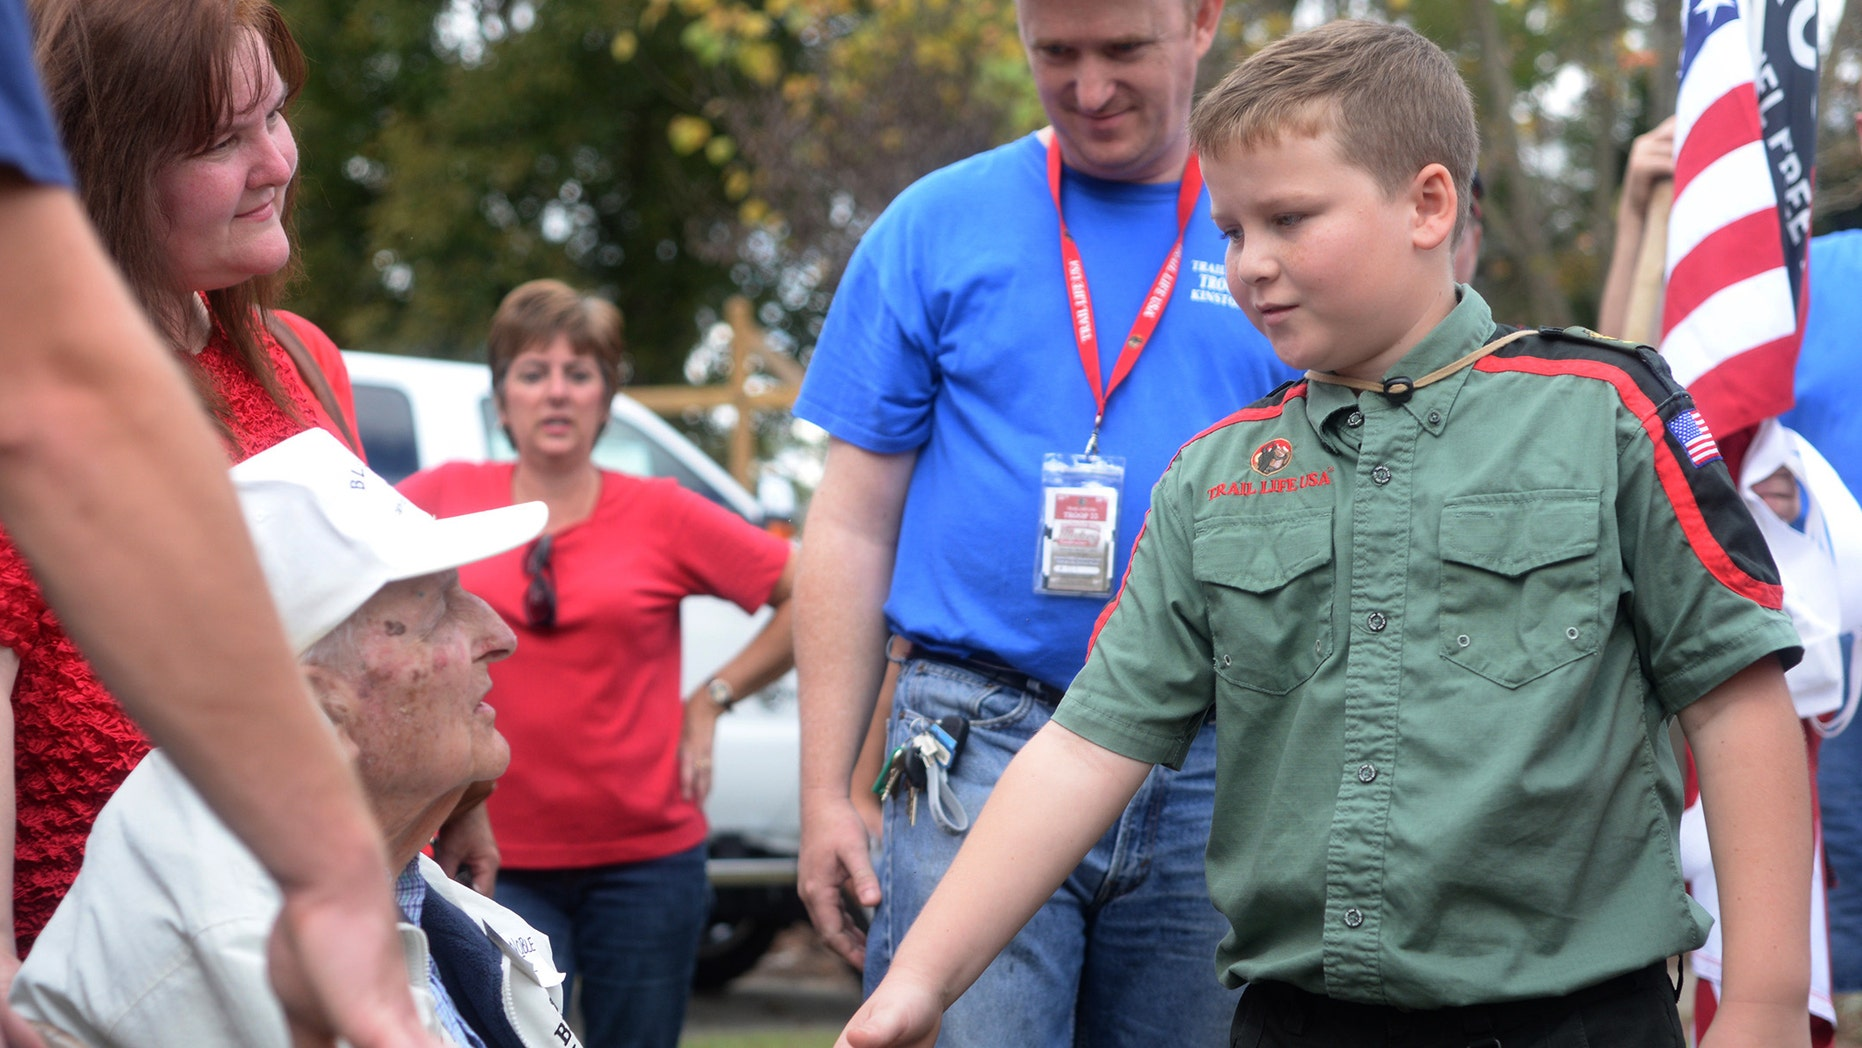 Nov. 7, 2015: Jackson Cannon, 10, of Trail Life USA-Troop 33, shakes hands with World War II veteran Ernest Noble, 95, during a Veteran's Day ceremony at Pearson Park in Kinston, N.C. Noble fought in Belgium, Luxemburg, Holland and Germany. In March of 1945 he helped liberate concentration camps. (Zach Frailey/Daily Free Press via AP)